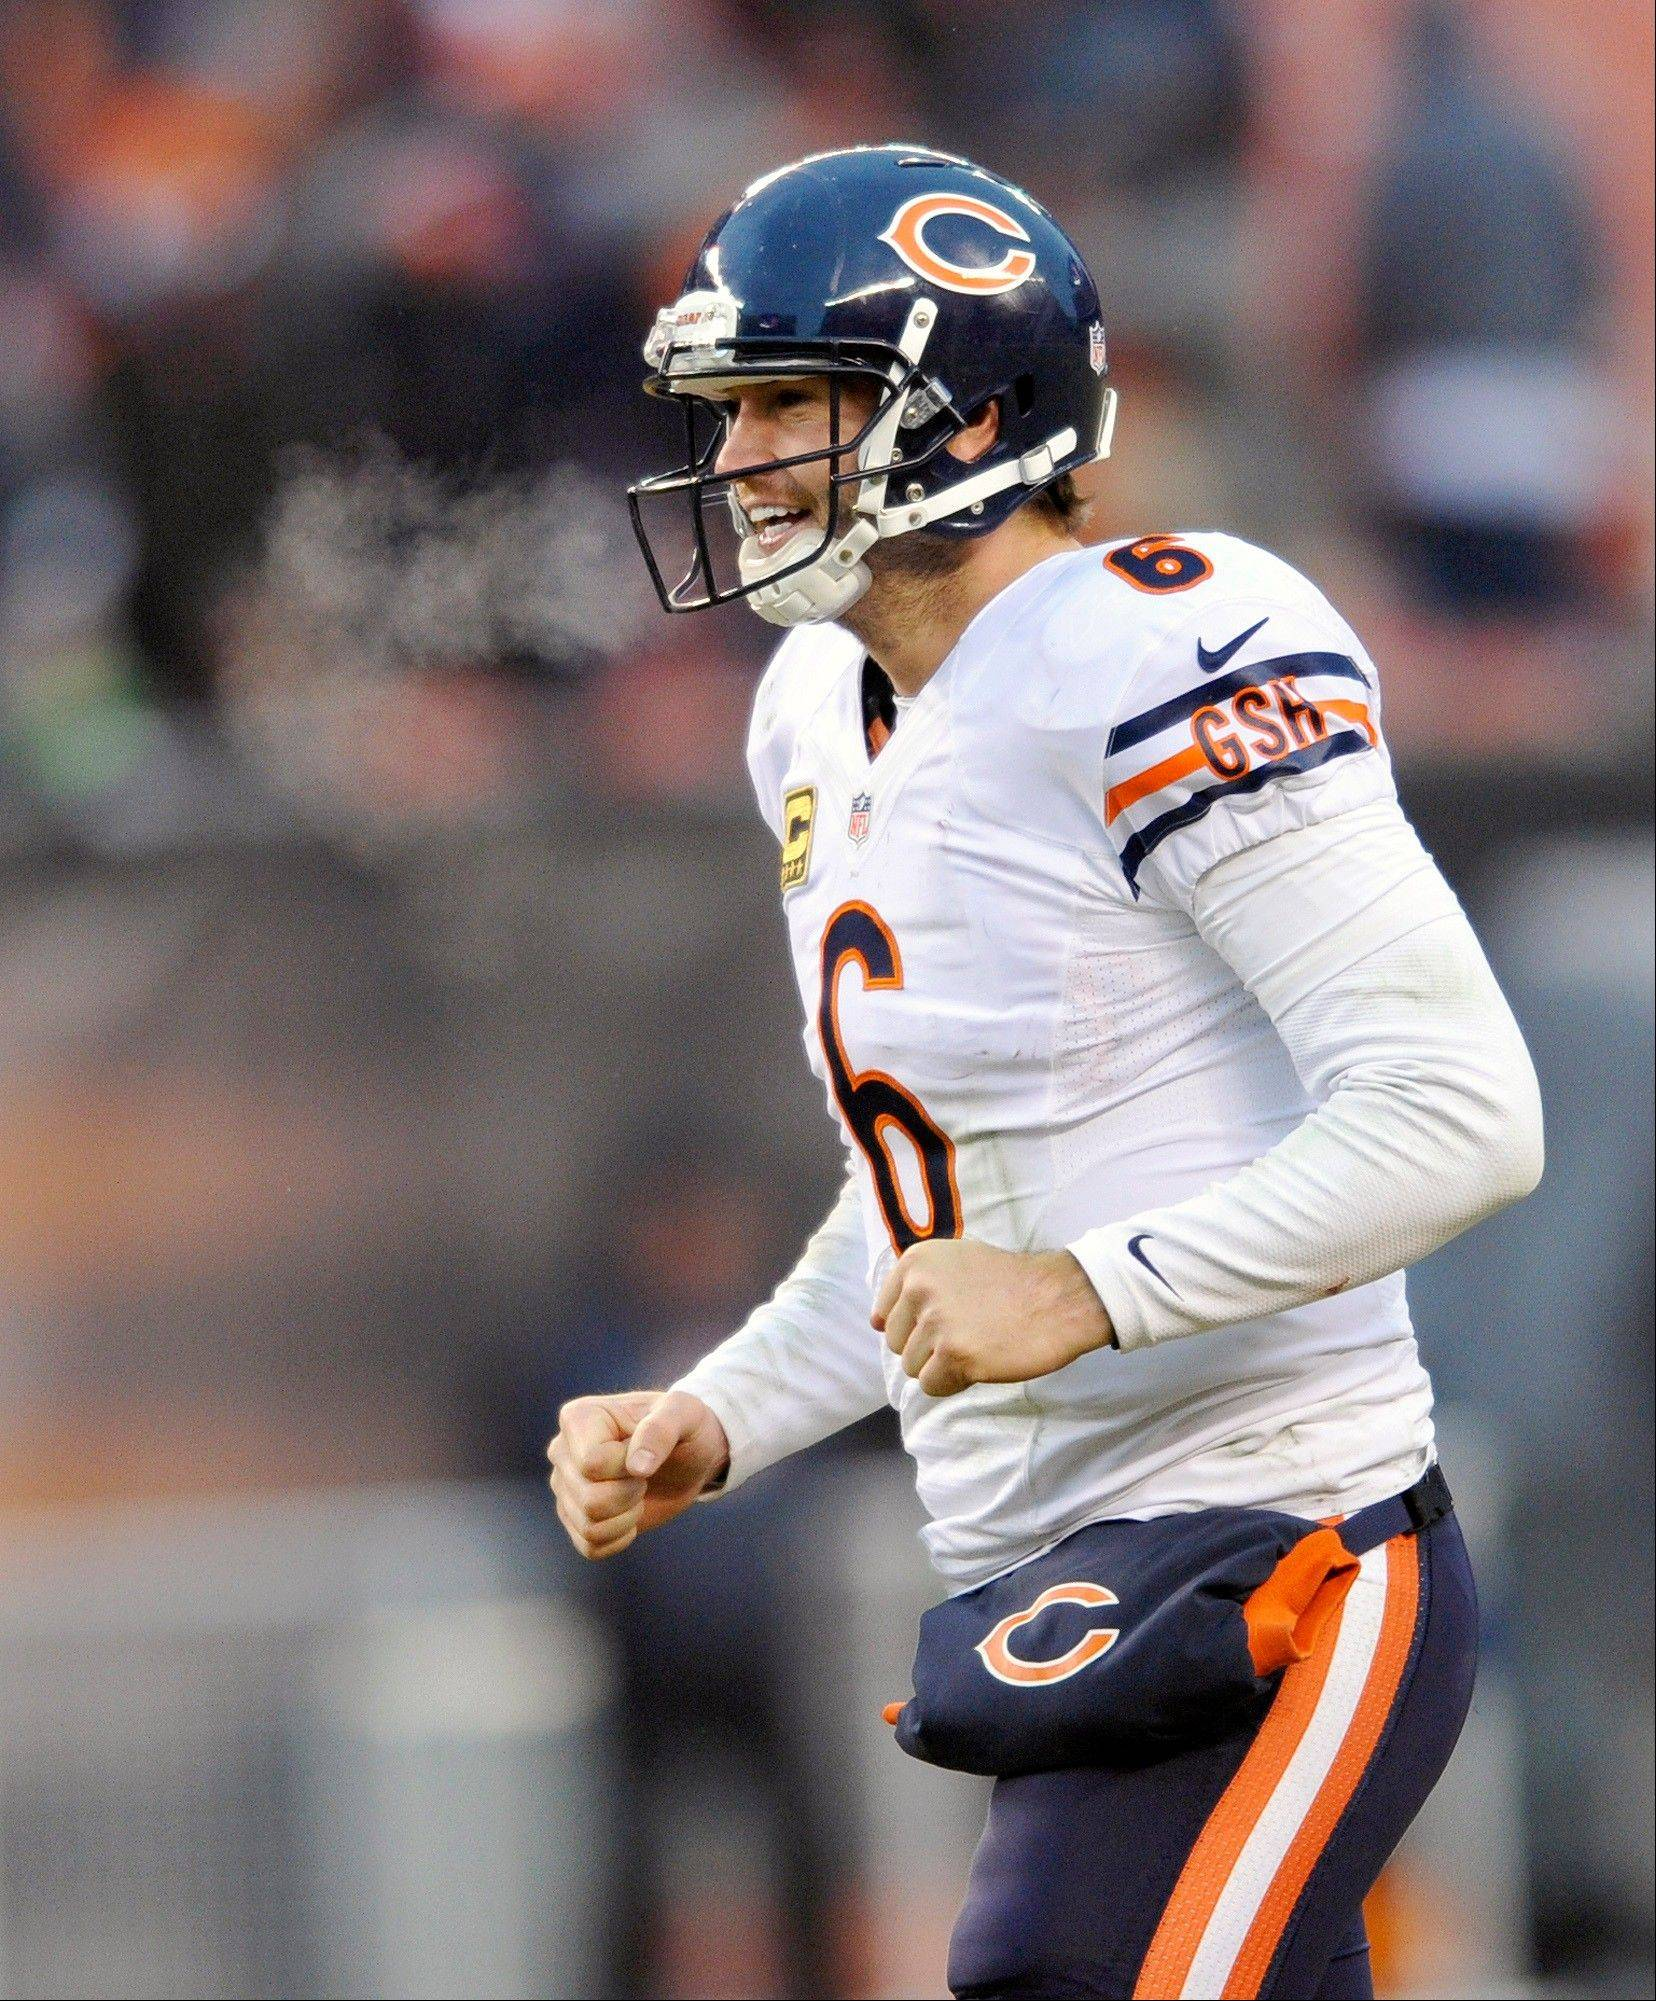 Bears quarterback Jay Cutler celebrates a touchdown by Bears running back Michael Bush in the fourth quarter of an NFL football game against the Cleveland Browns on Sunday, Dec. 15, 2013, in Cleveland. Chicago won 38-31.